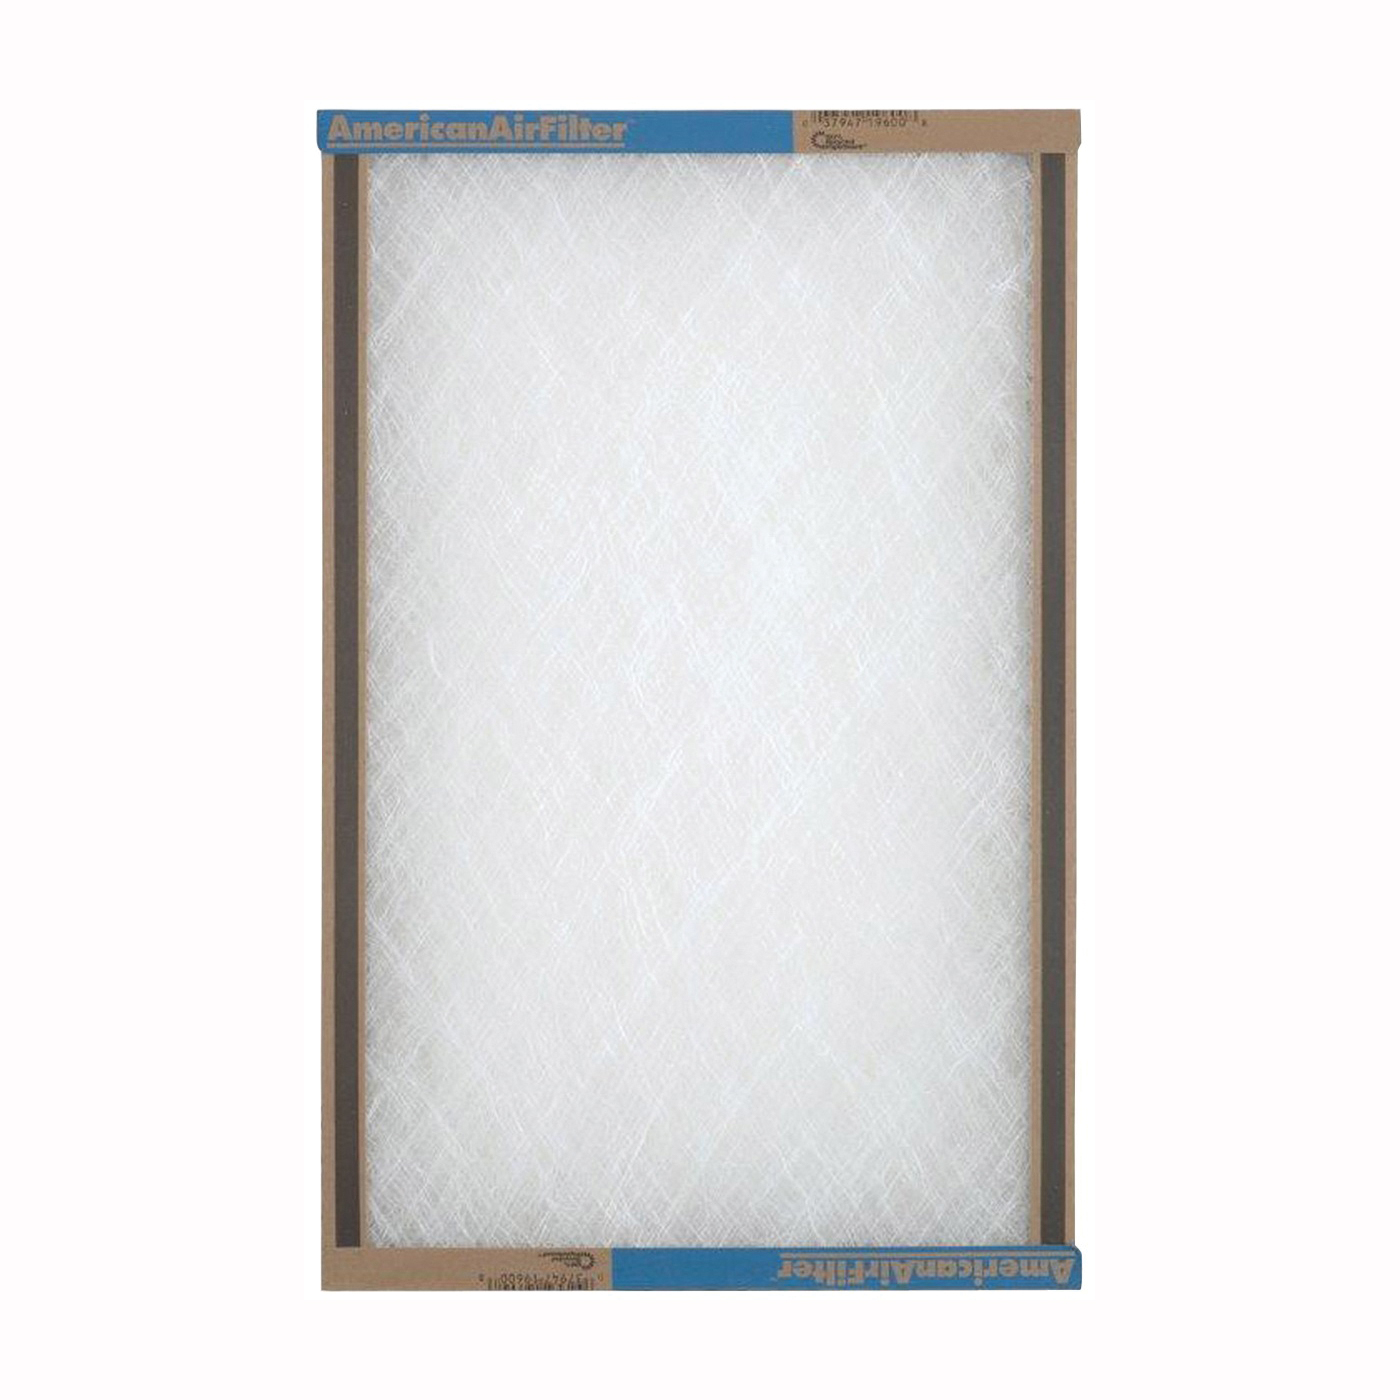 Picture of AAF 220-600-051 Panel Filter, 25 in L, 16 in W, Chipboard Frame